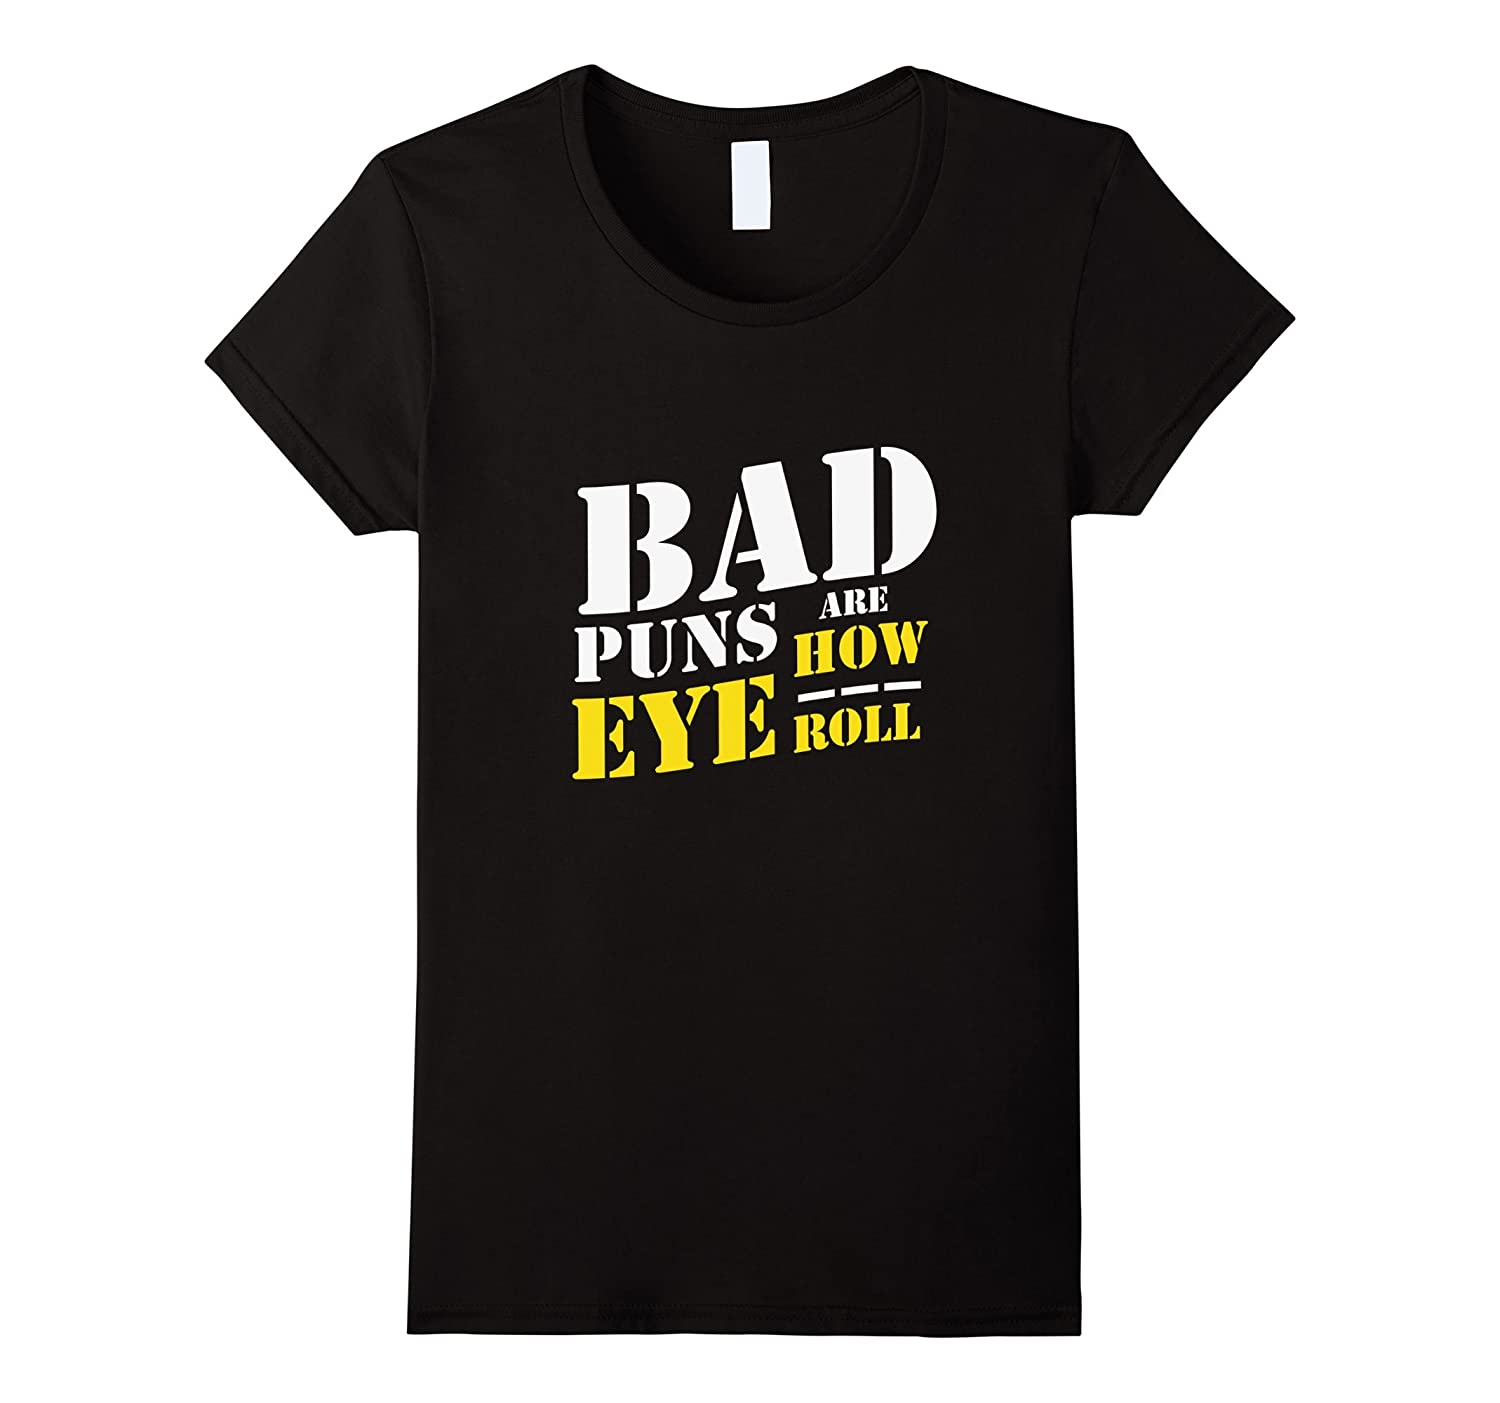 Bad Puns Are How Eye Roll t shirt – Funny Puns tees